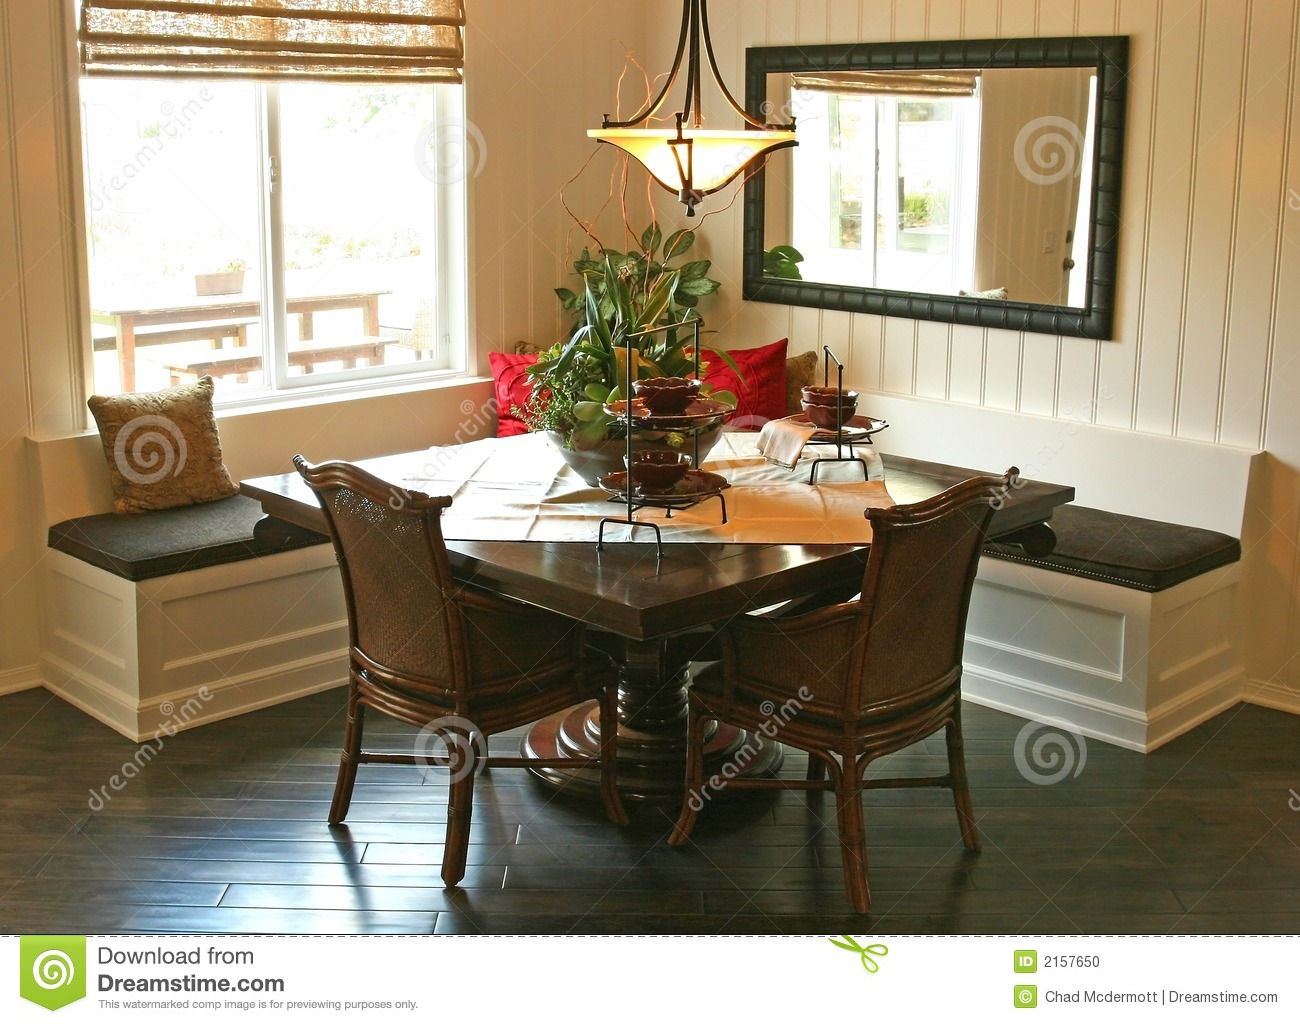 Picture of model home interiors